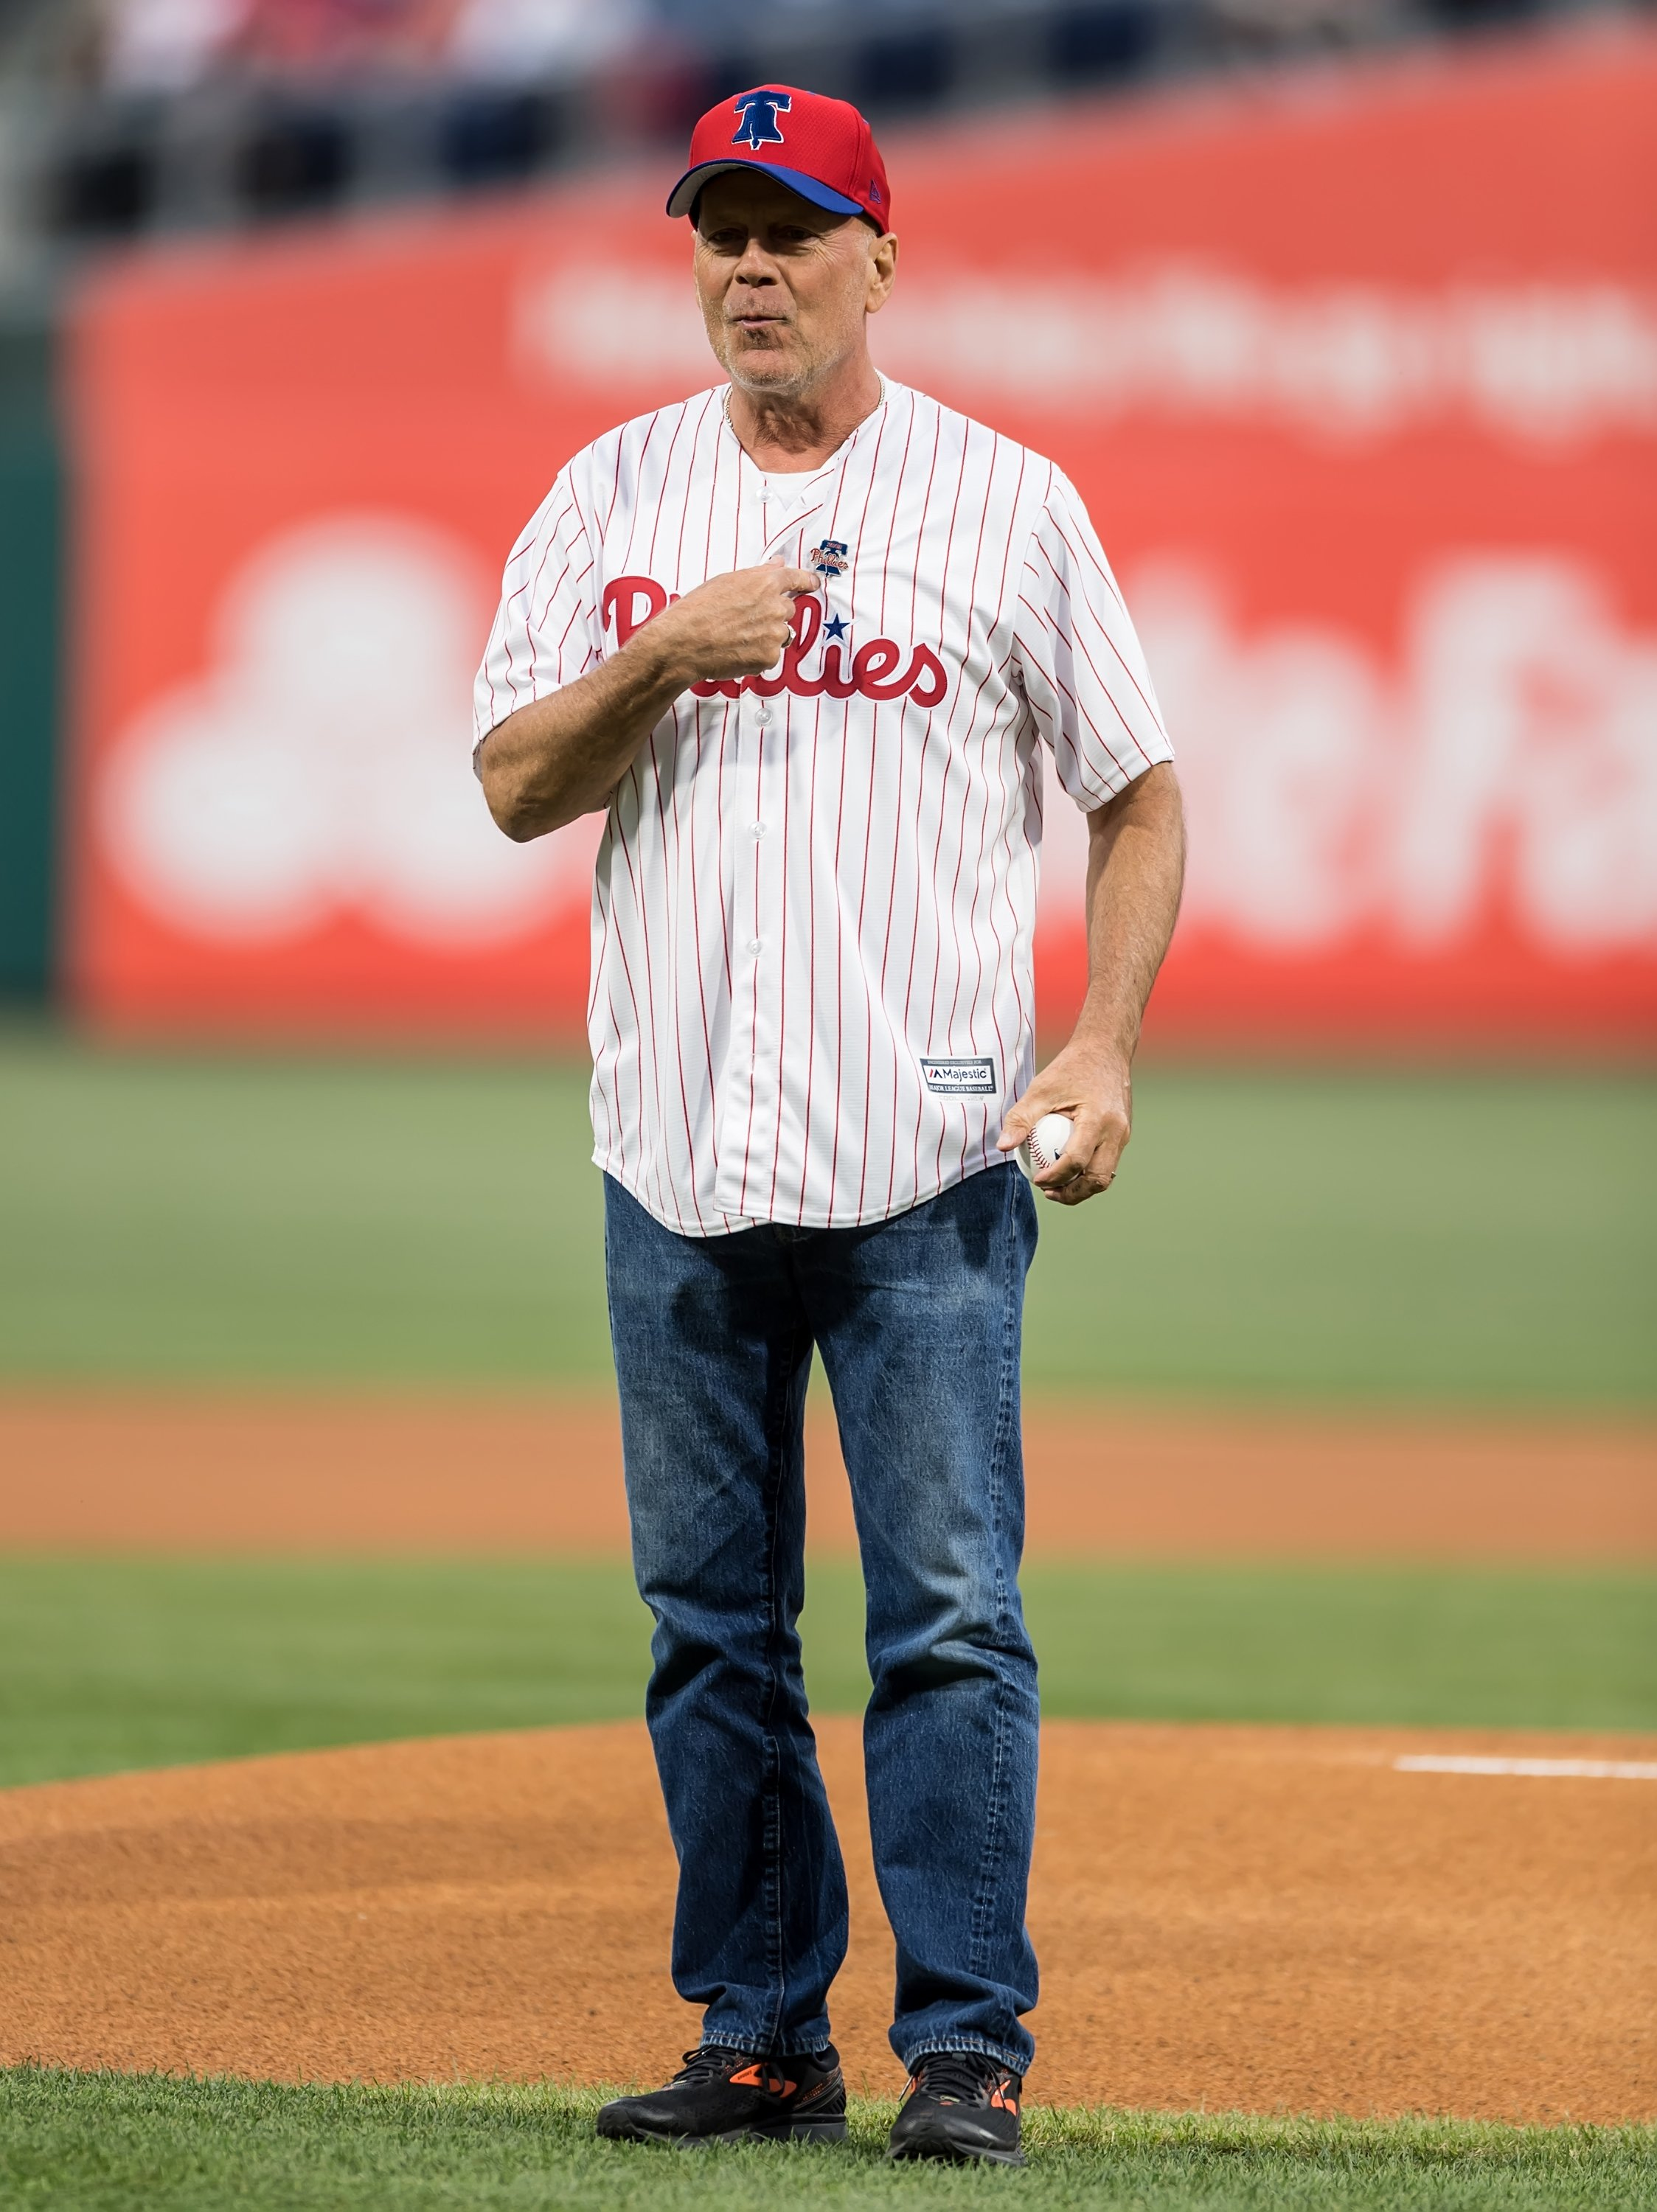 Bruce Willis throws ceremonial pitch at the Milwaukee Brewers v Philadelphia Phillies game at Citizens Bank Park on May 15, 2019, in Philadelphia, Pennsylvania. | Source: Getty Images.